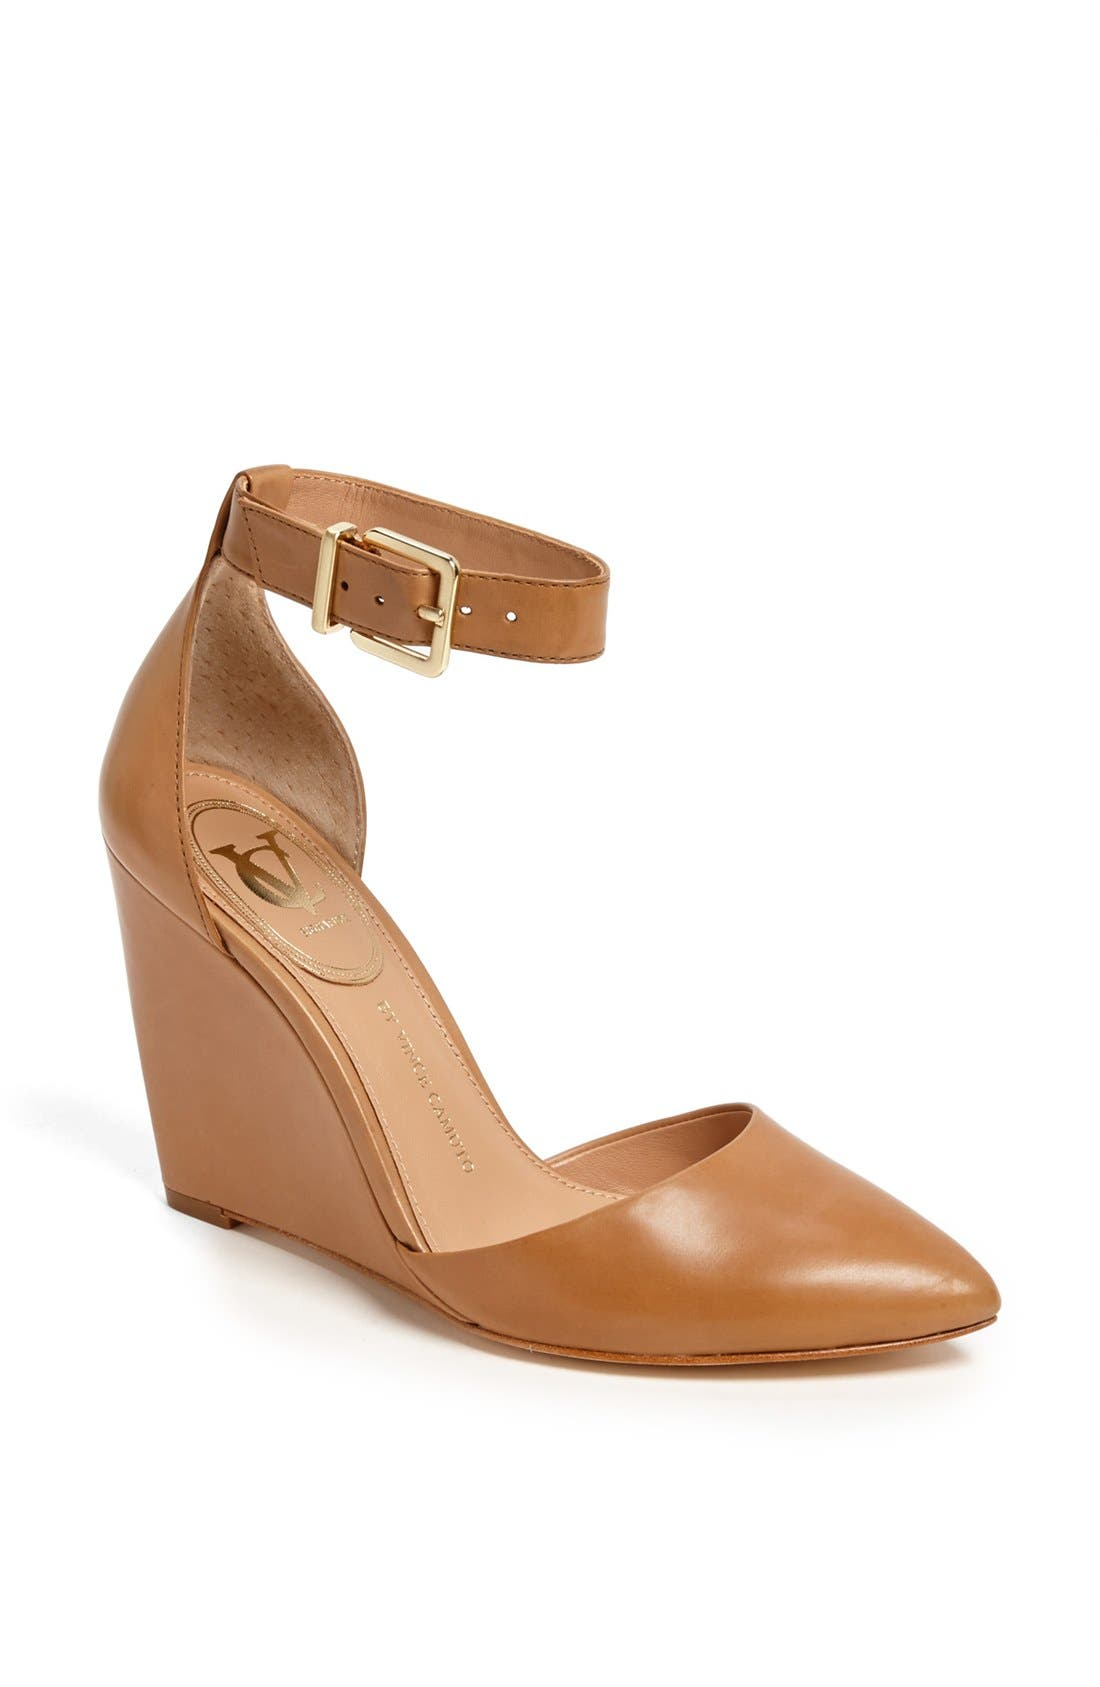 Main Image - VC Signature 'Solanna' Leather Wedge Pump